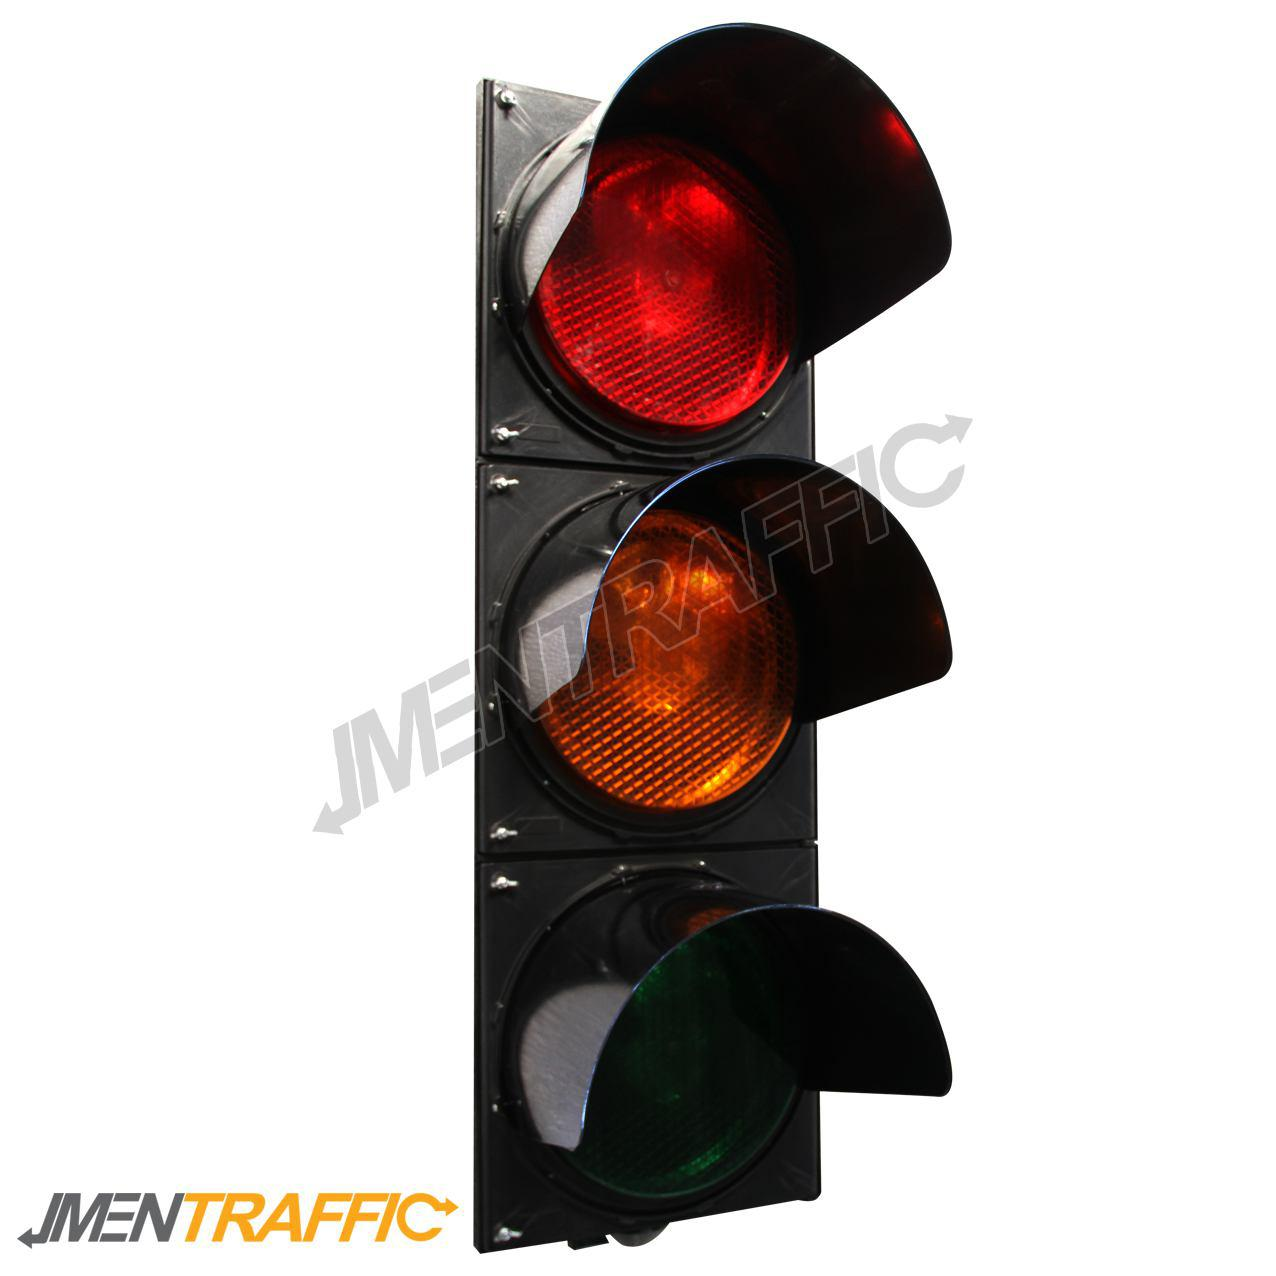 Three aspect traffic light